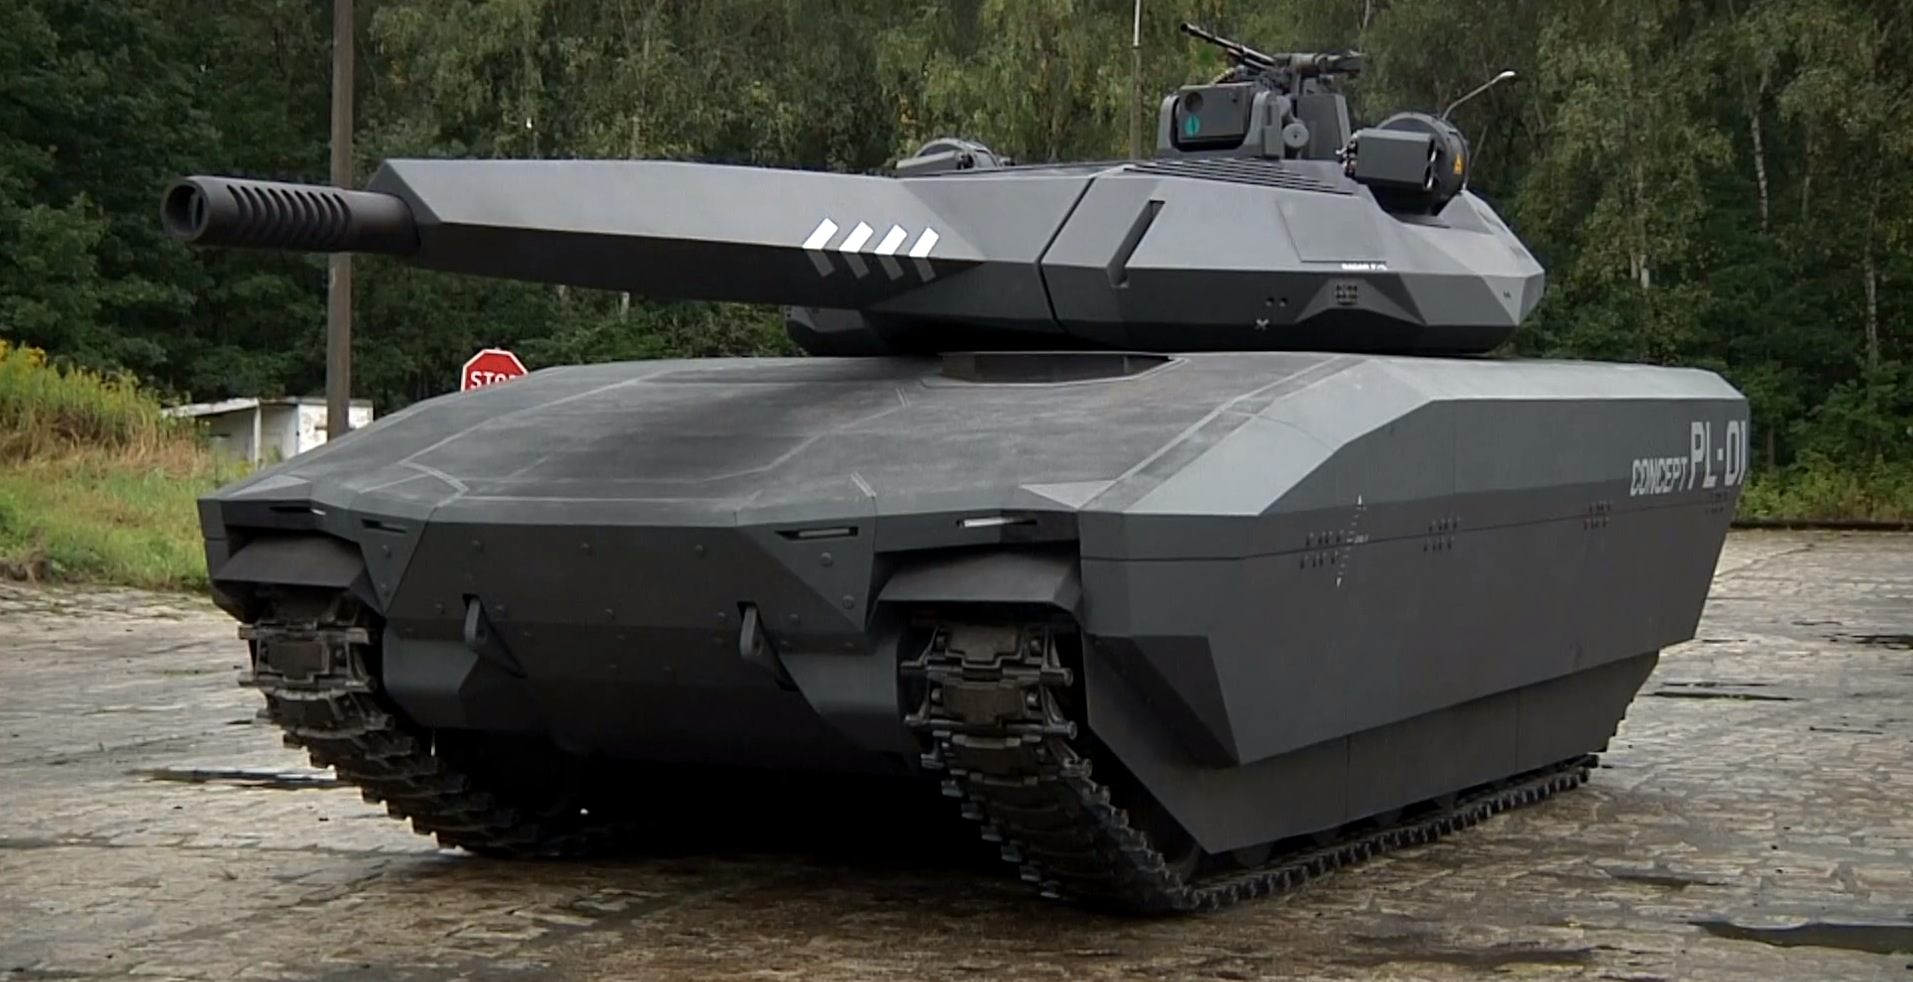 The Pl 01 Stealth Tank Is As Absurdly Cool As A Lamborghini Video 93482 on robots fighting vehicle